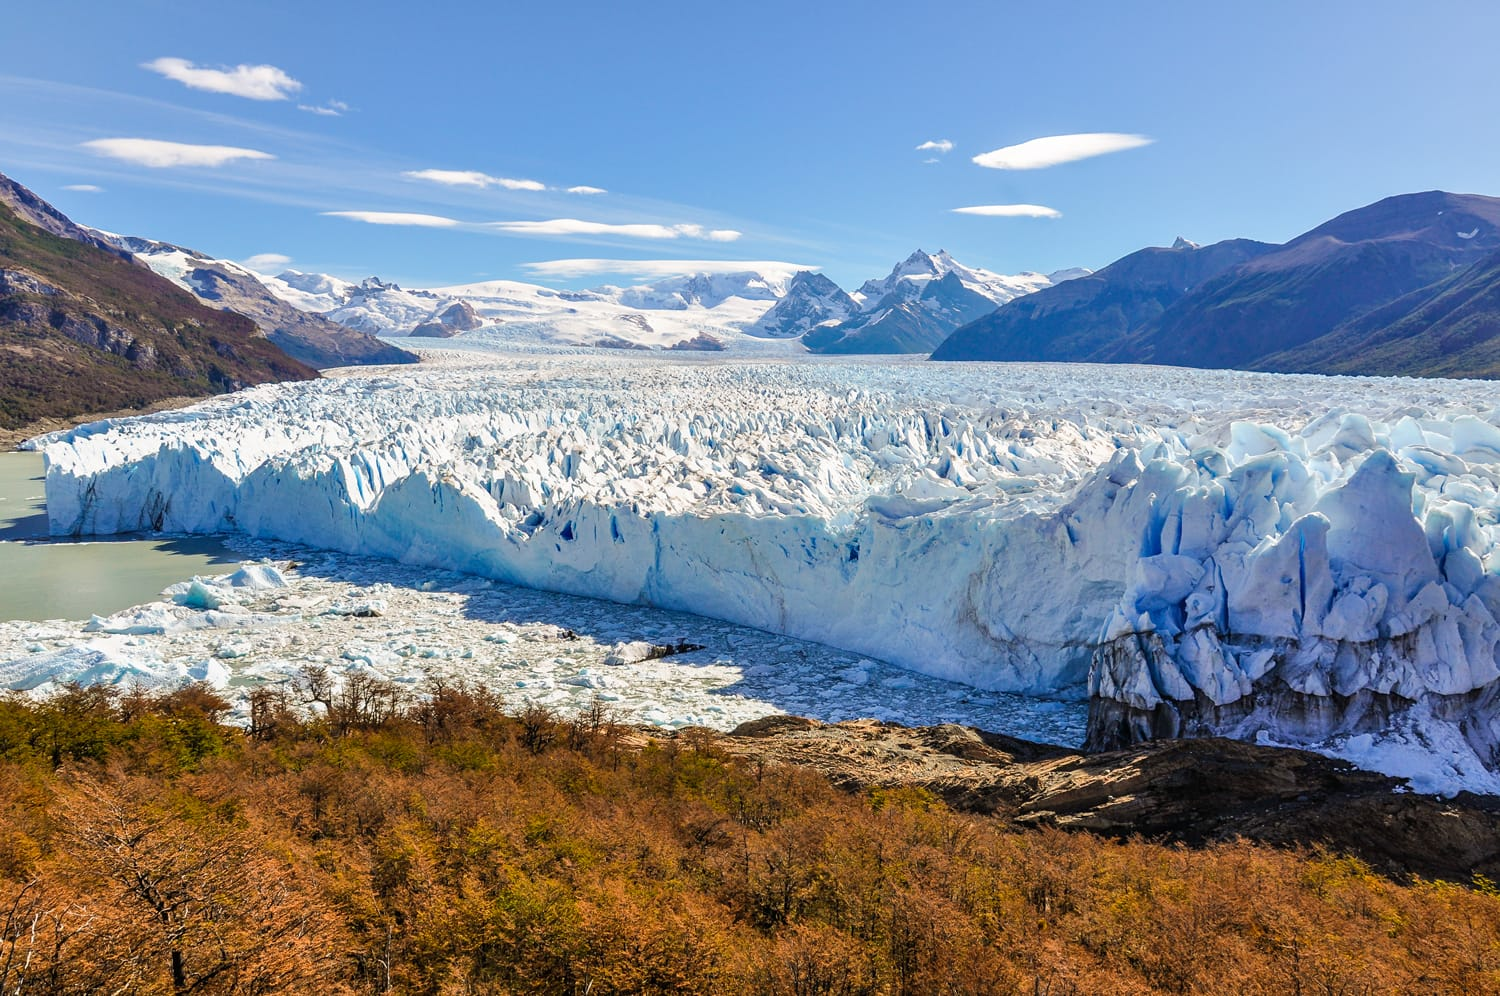 Panoramic view at the Perito Moreno Glacier, Patagonia, Argentina